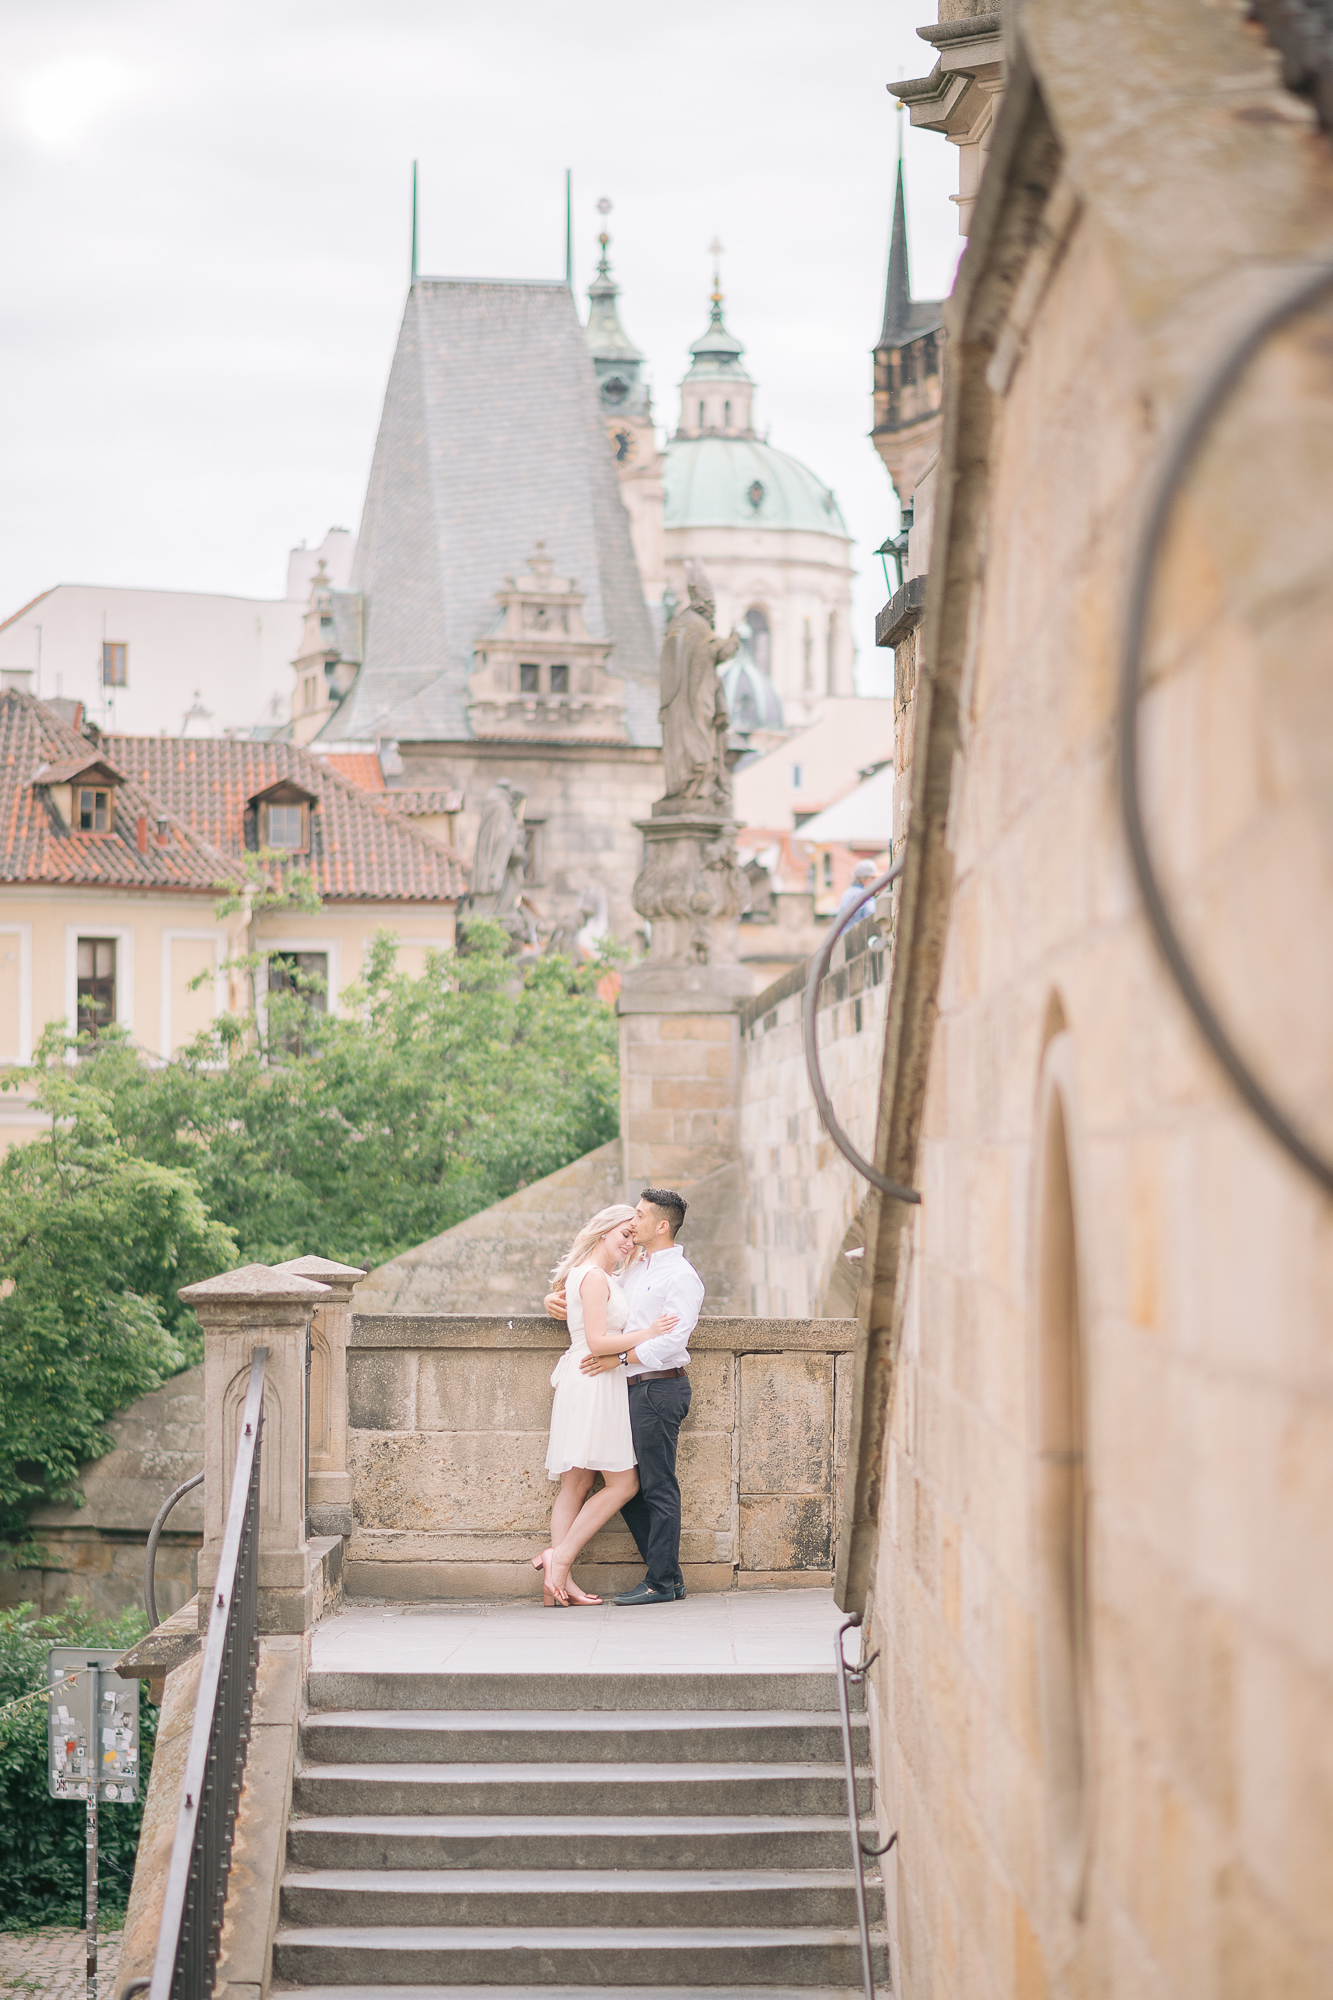 Prague-Wedding-Photography-Matej-Trasak-Engagement-AJ-111.jpg